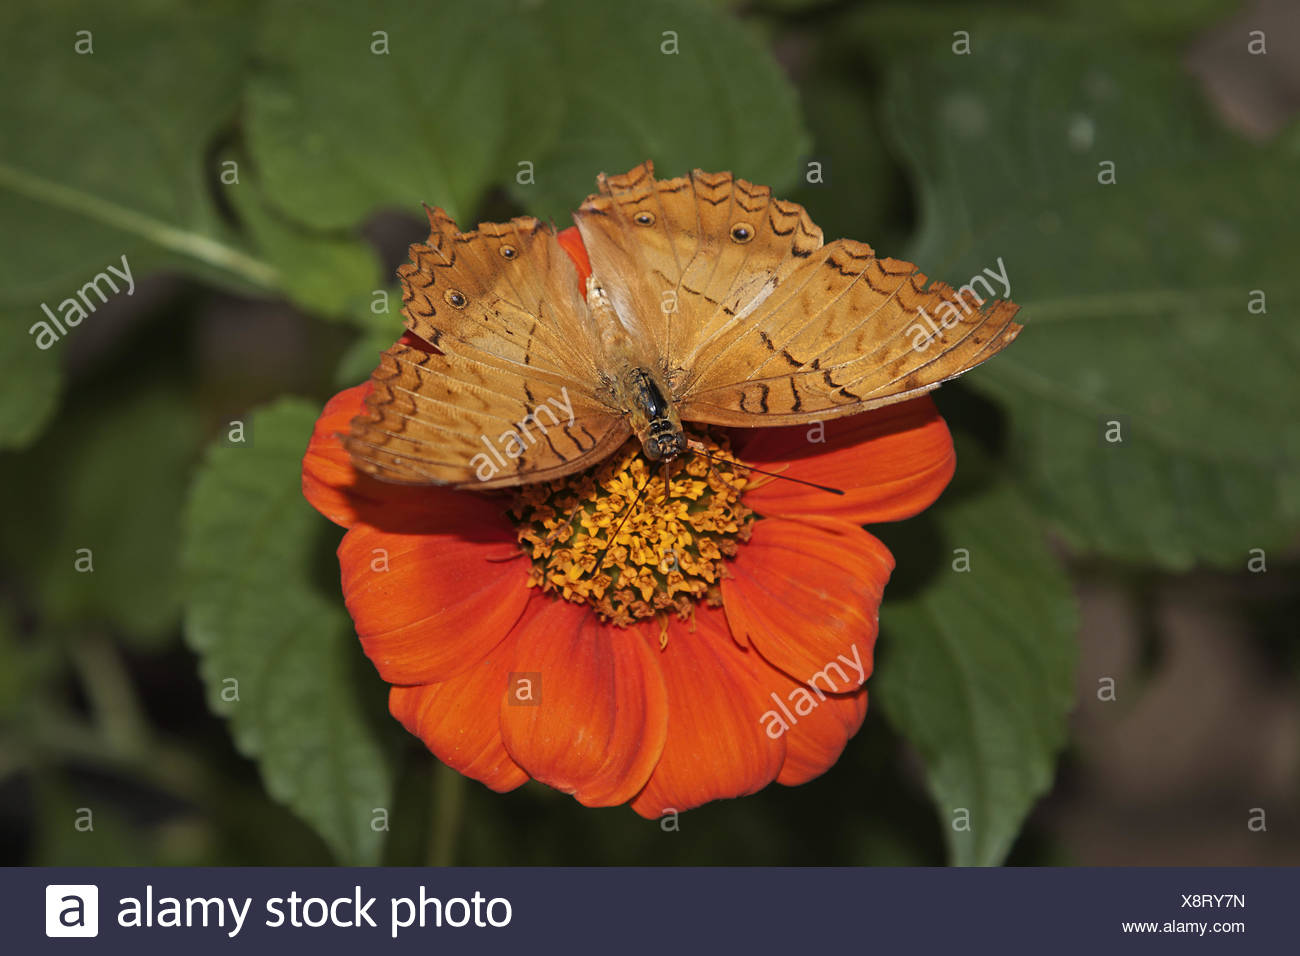 Passion butterlfy - Stock Image